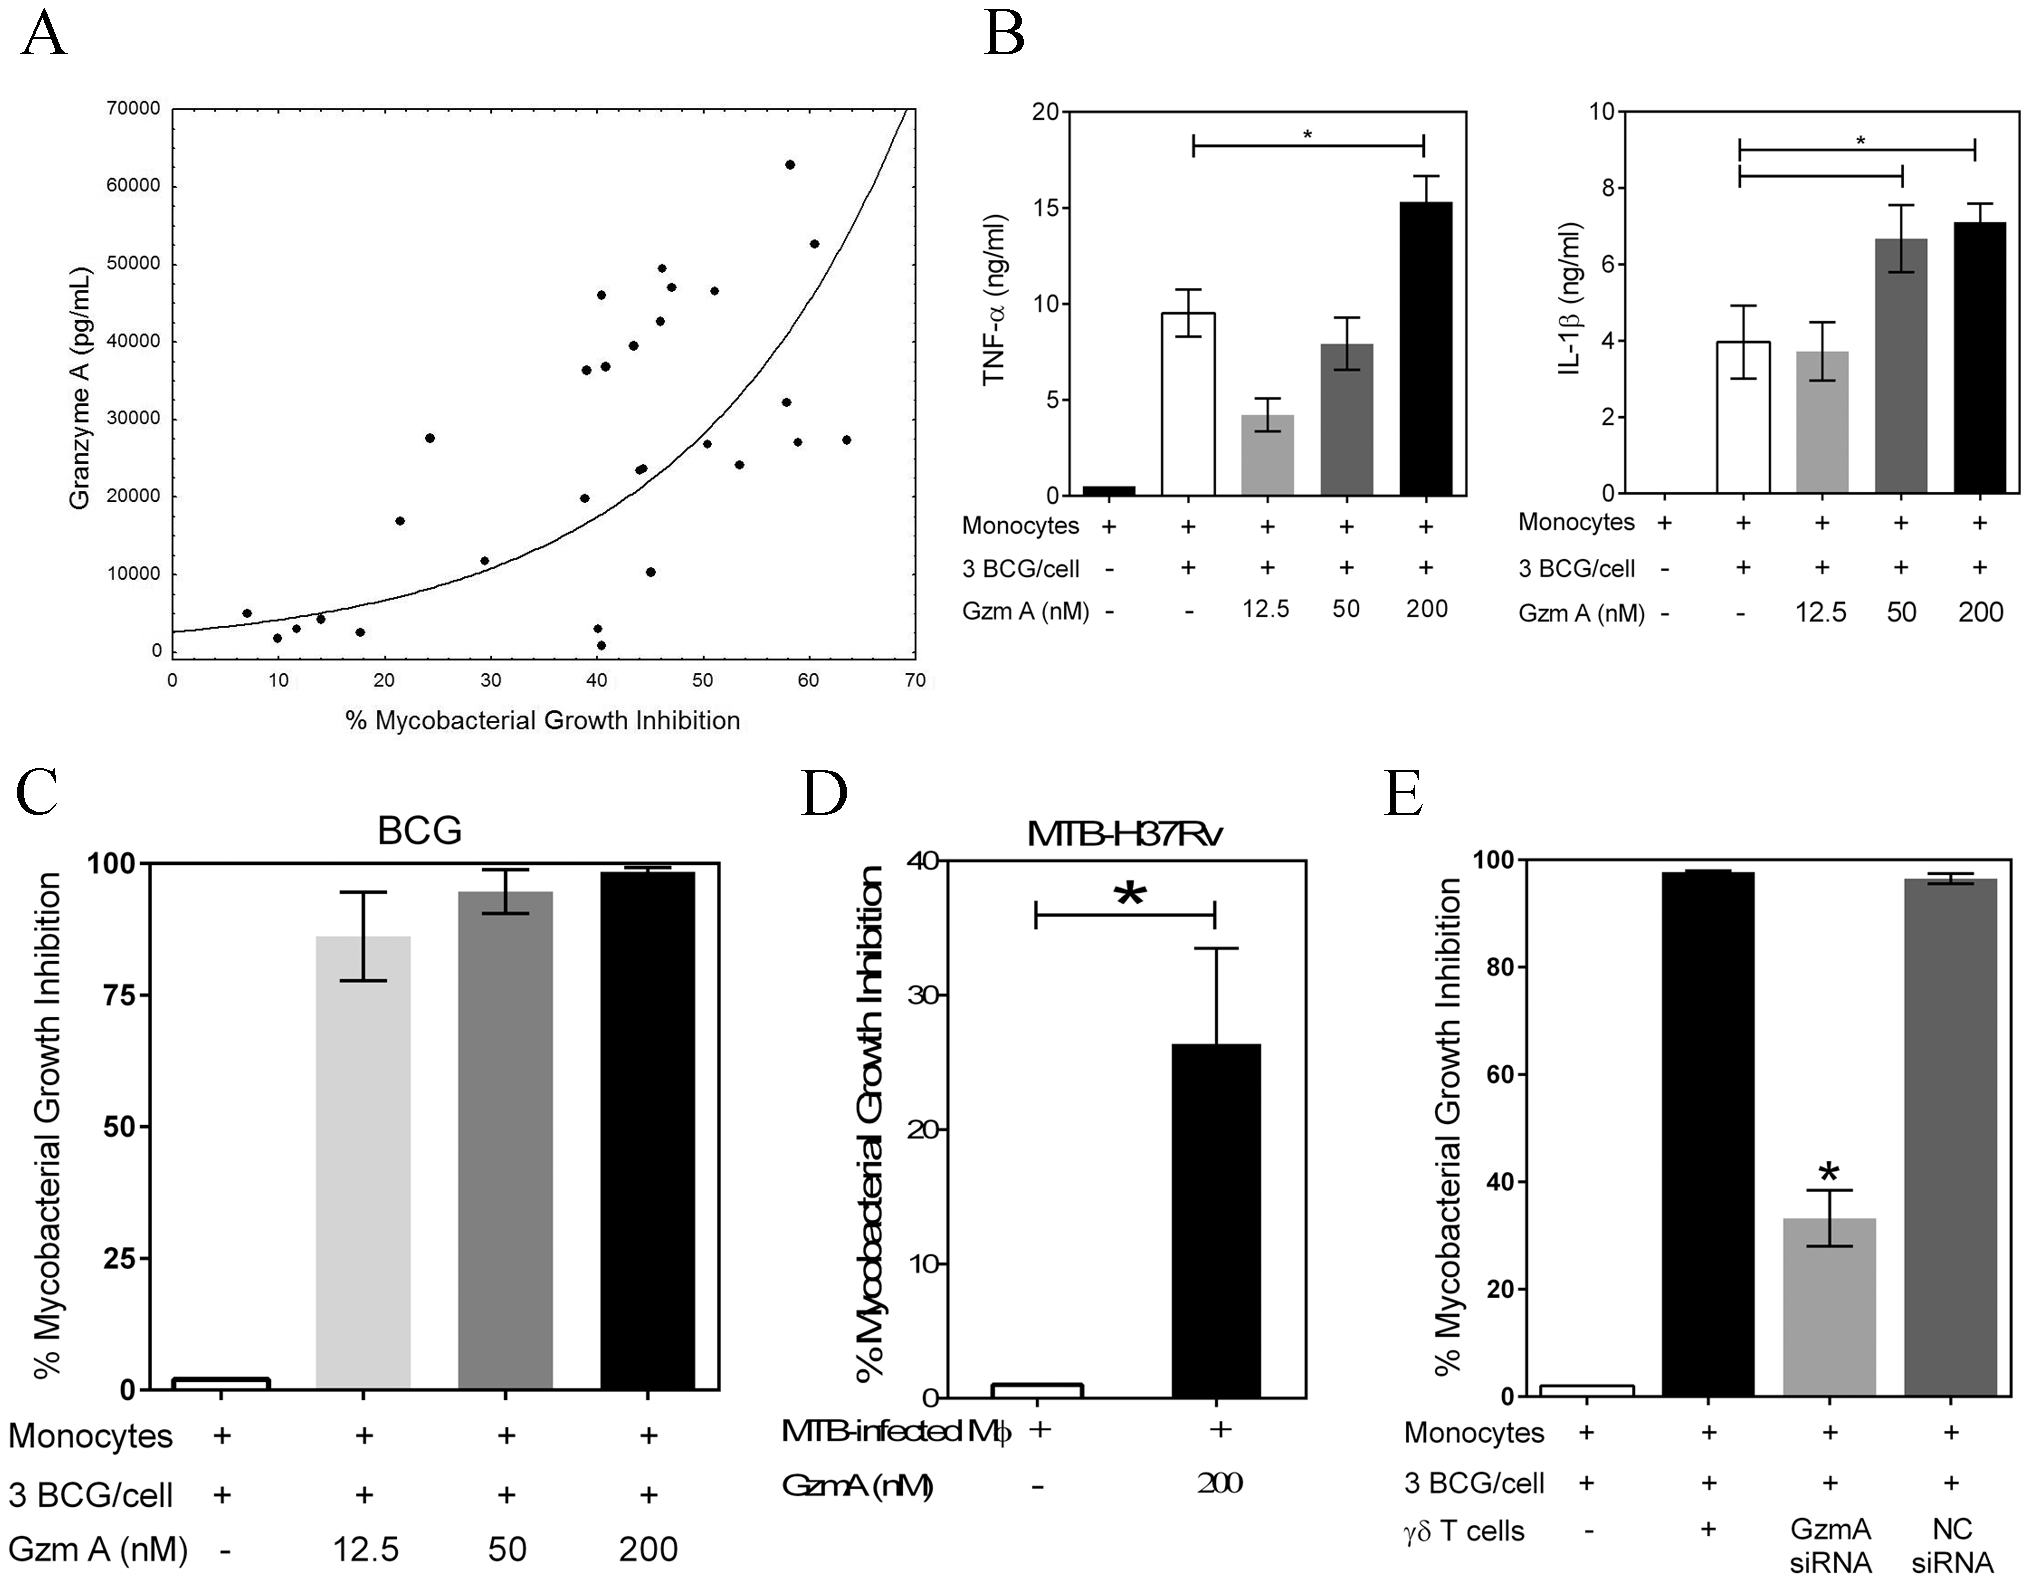 Granzyme A secretion by γ<sub>9</sub>δ<sub>2</sub> T cells mediates inhibition of intracellular mycobacteria by induction of inflammatory responses in mycobacteria-infected macrophages.